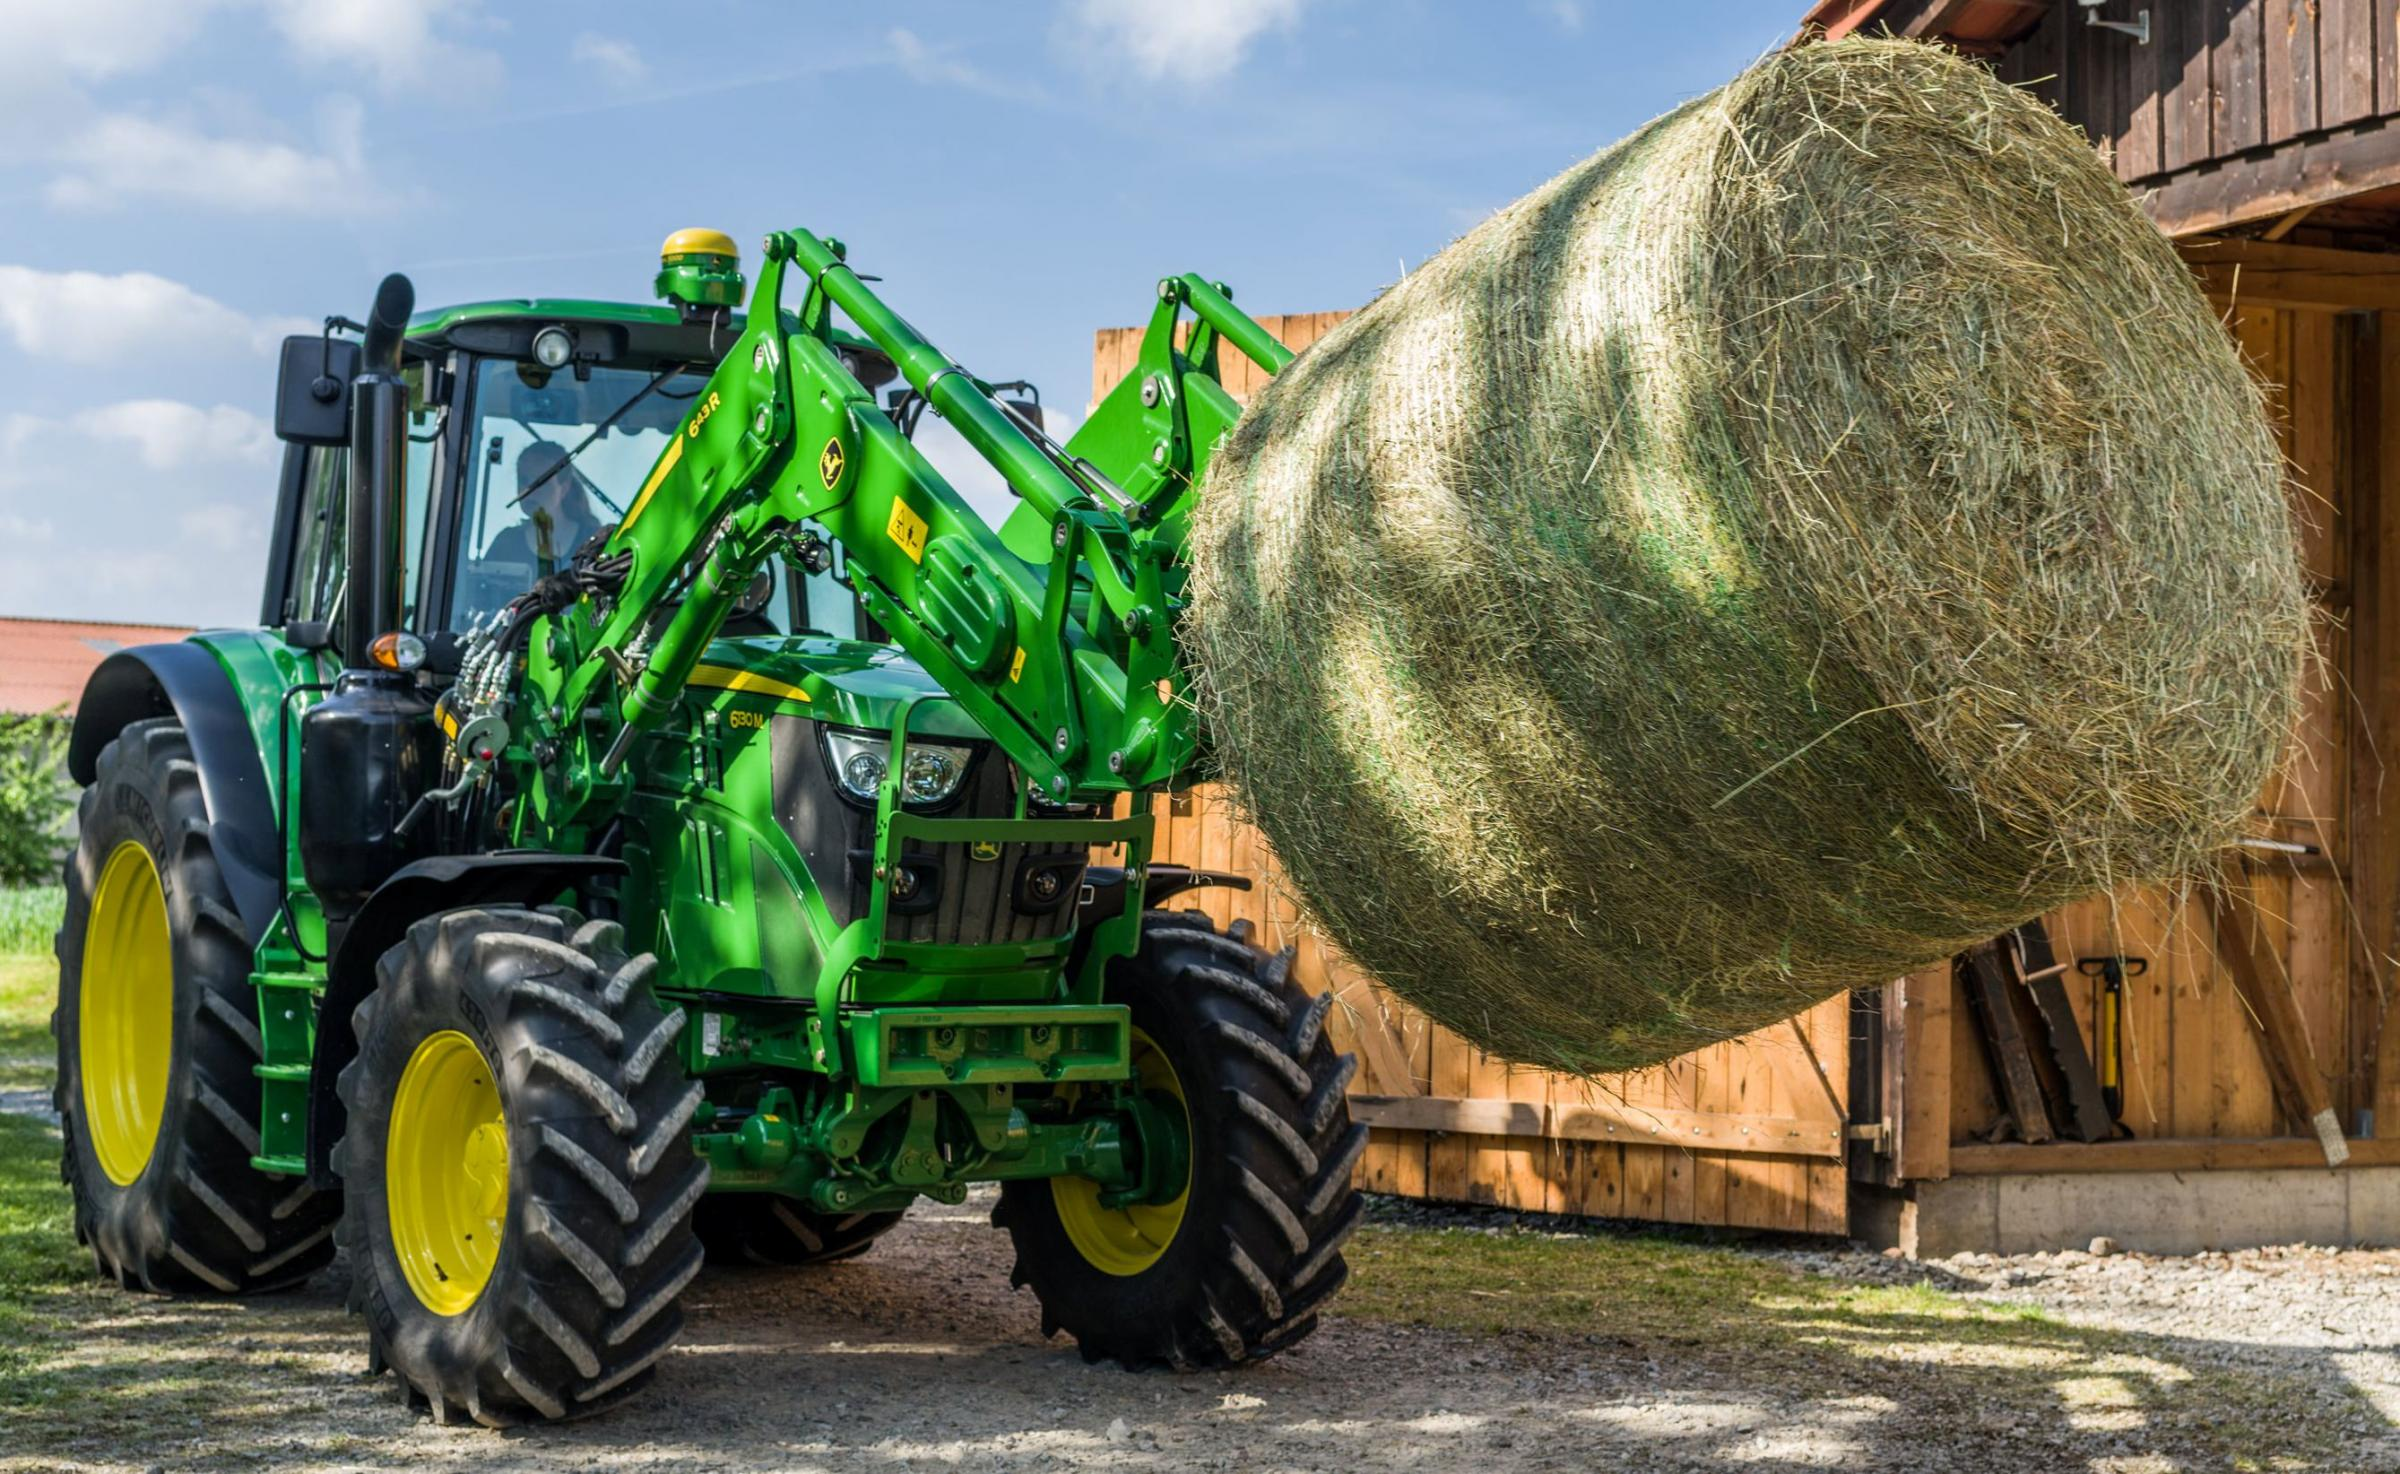 Bigger tractors but fewer sales